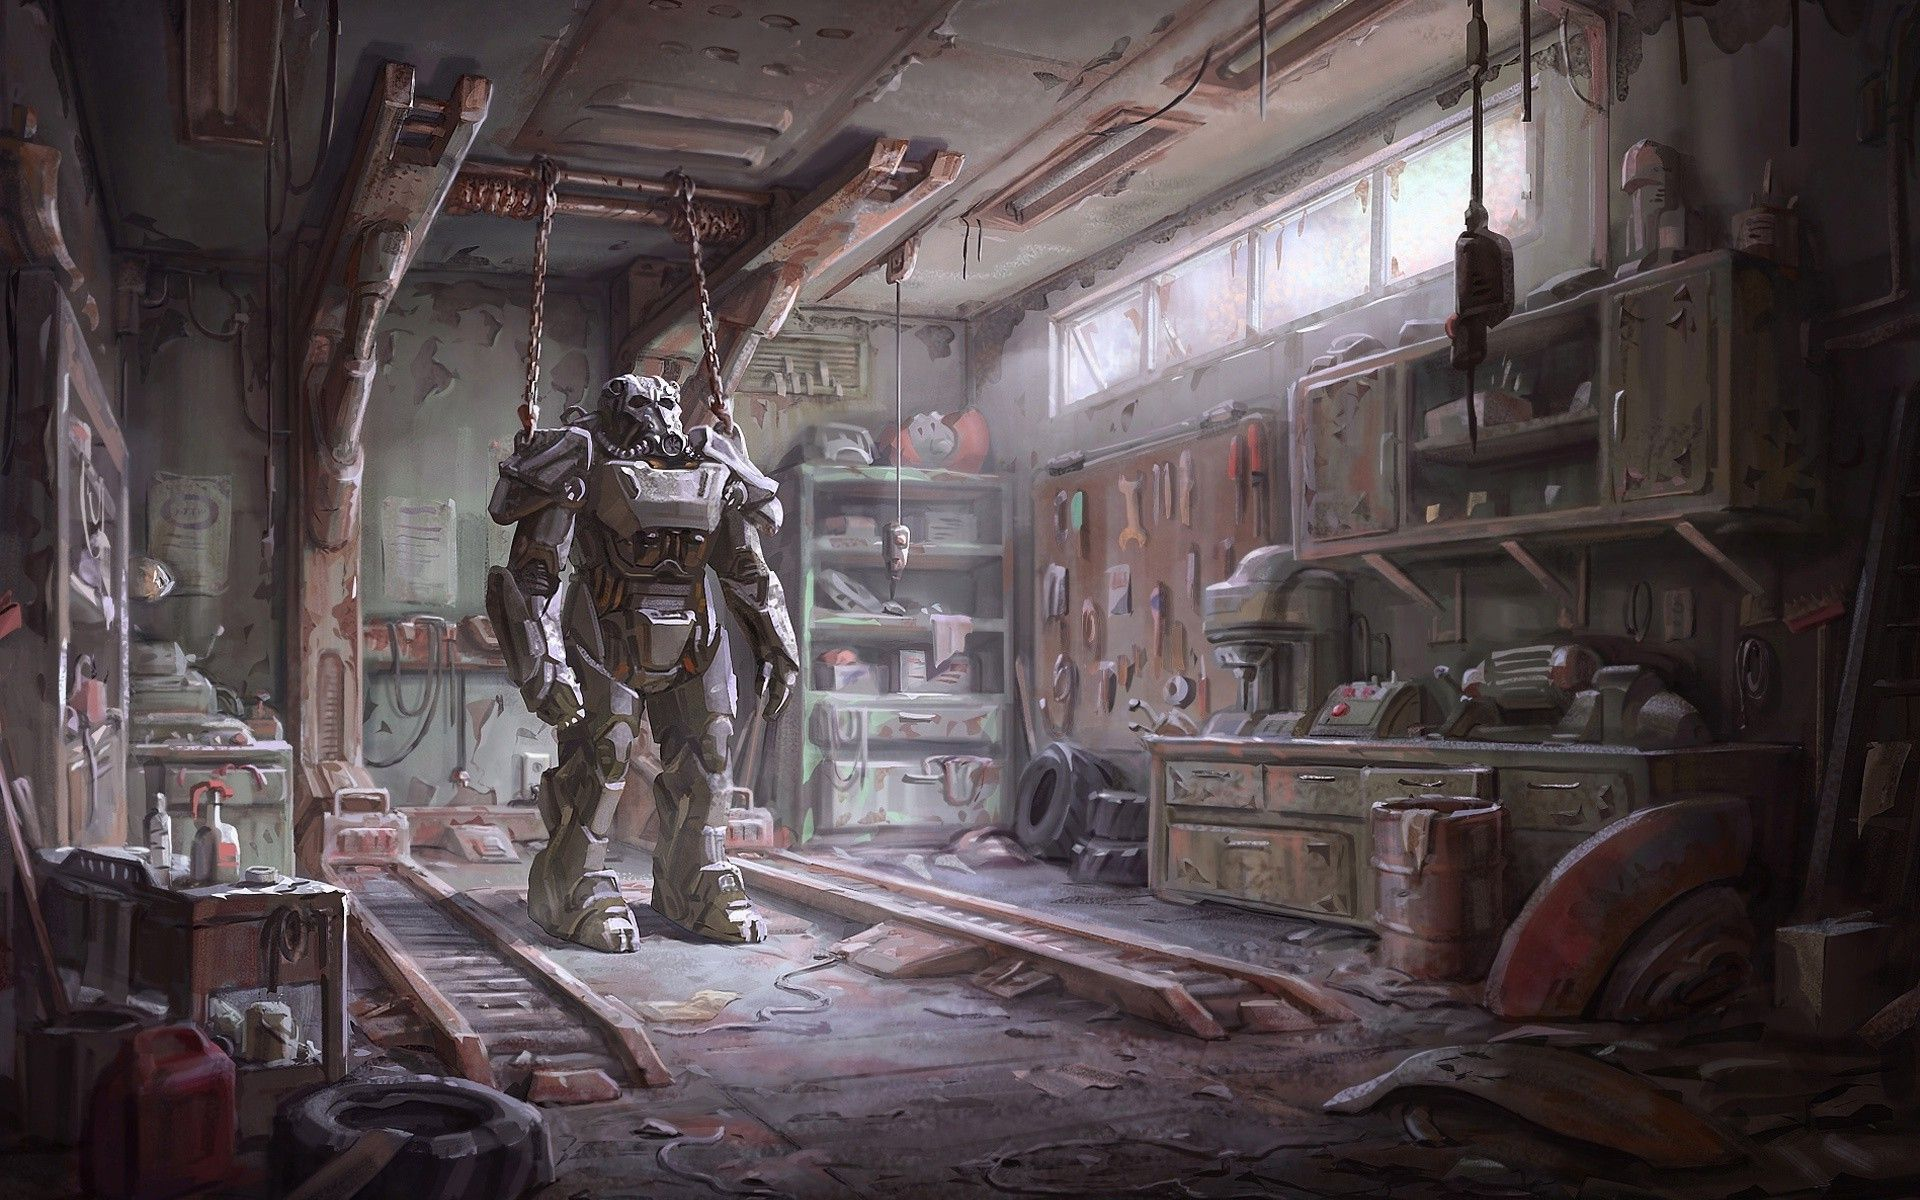 Download Hd Fallout Fallout 4 Concept Art Video Games Brotherhood Of Steel Armor Wallpapers Fallout Concept Art Concept Art Screen Wallpaper Hd